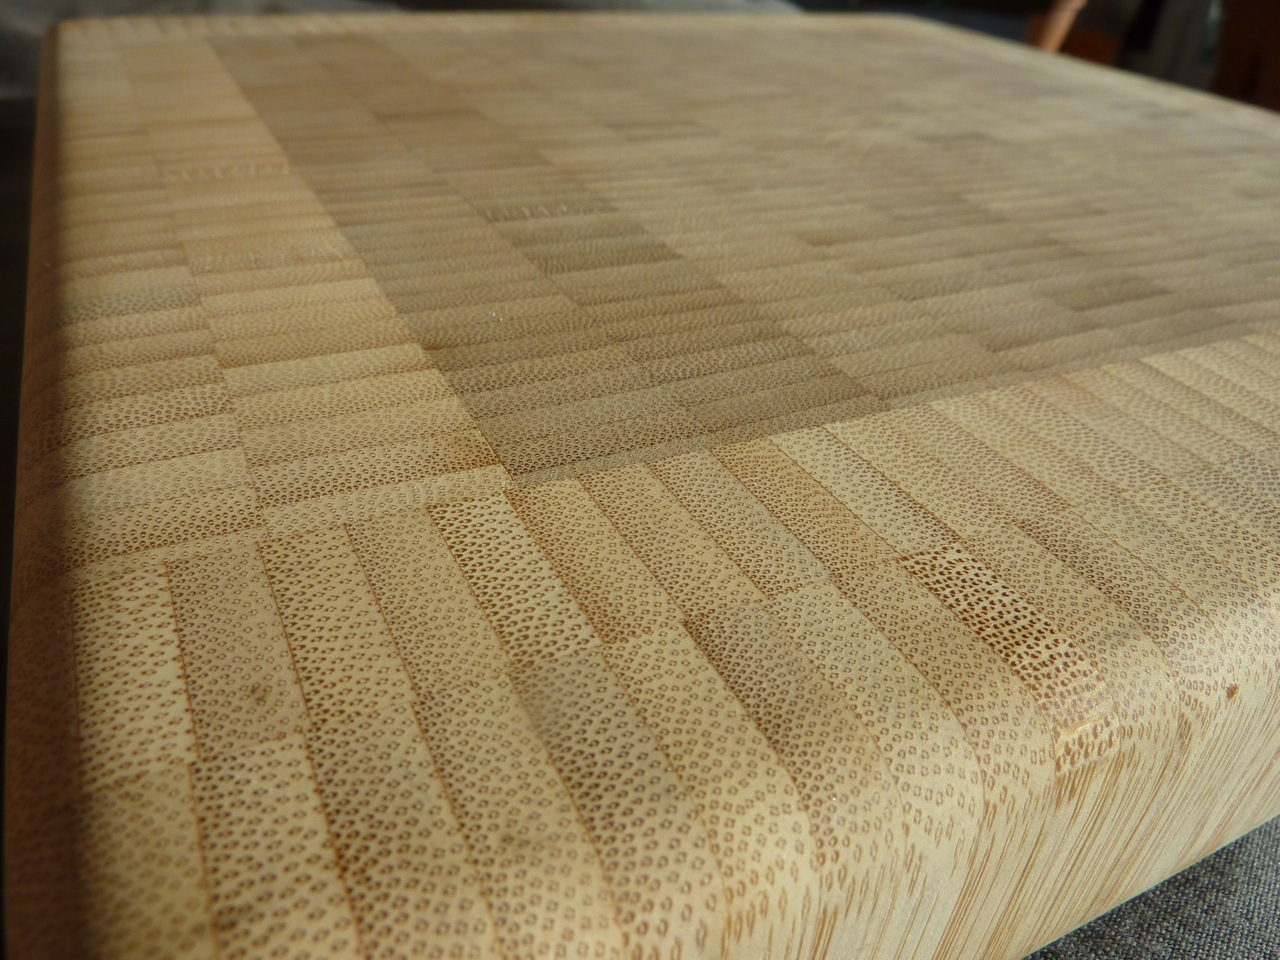 end-grain bamboo cutting board